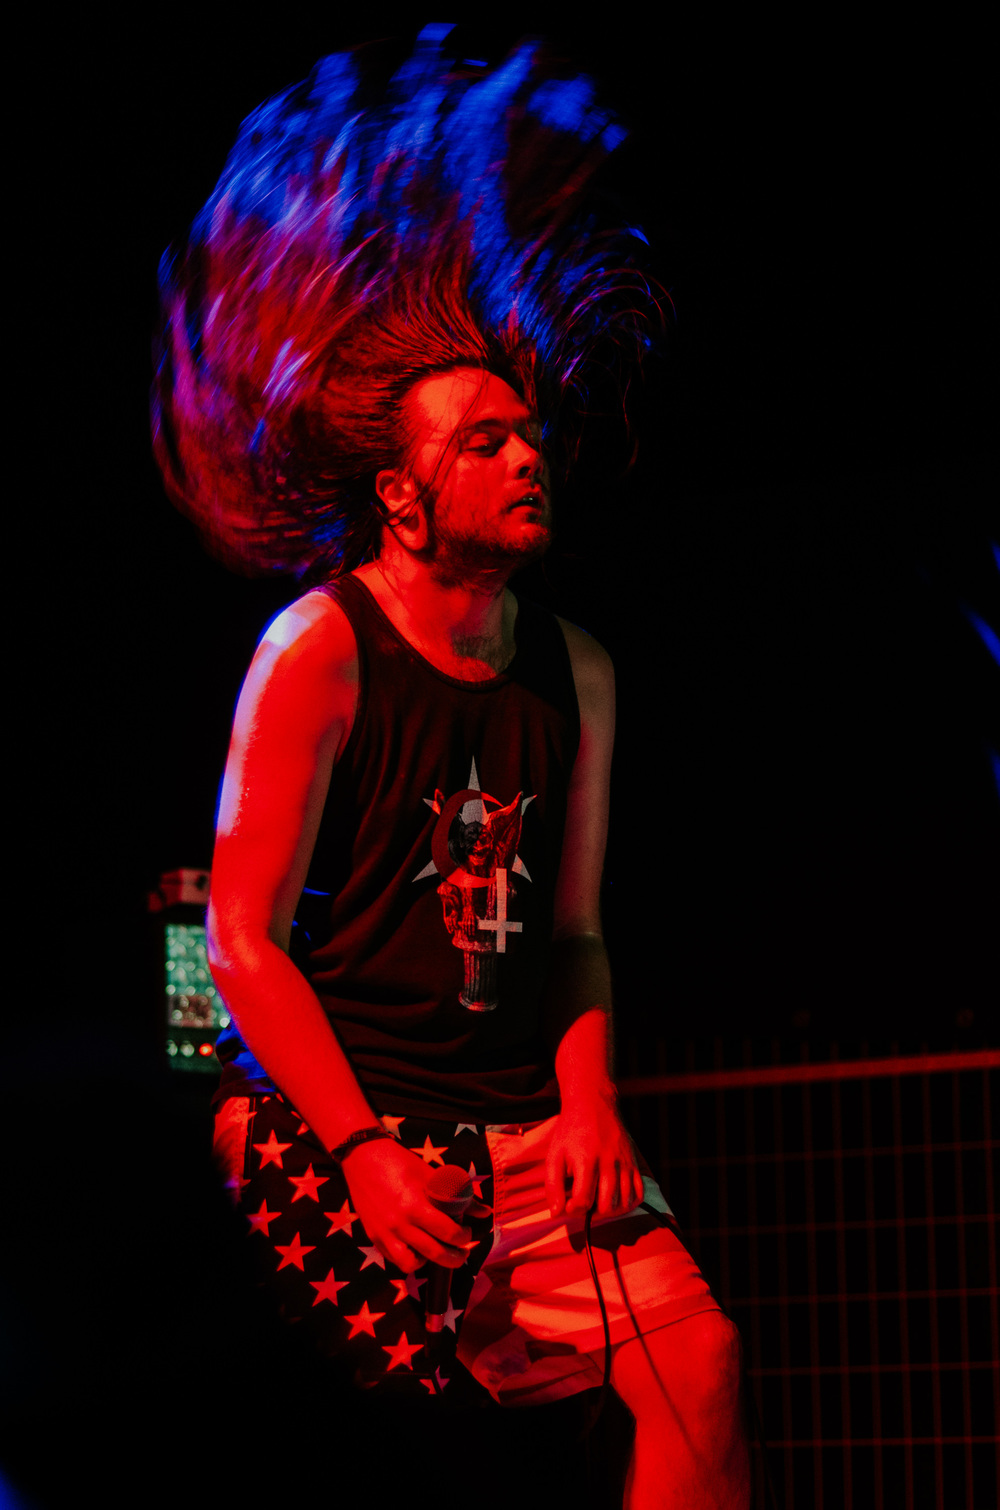 5_Cryptic_Enslavement_Armstrong_Festival_Timothy_Nguyen_20160716 (7 of 8).jpg